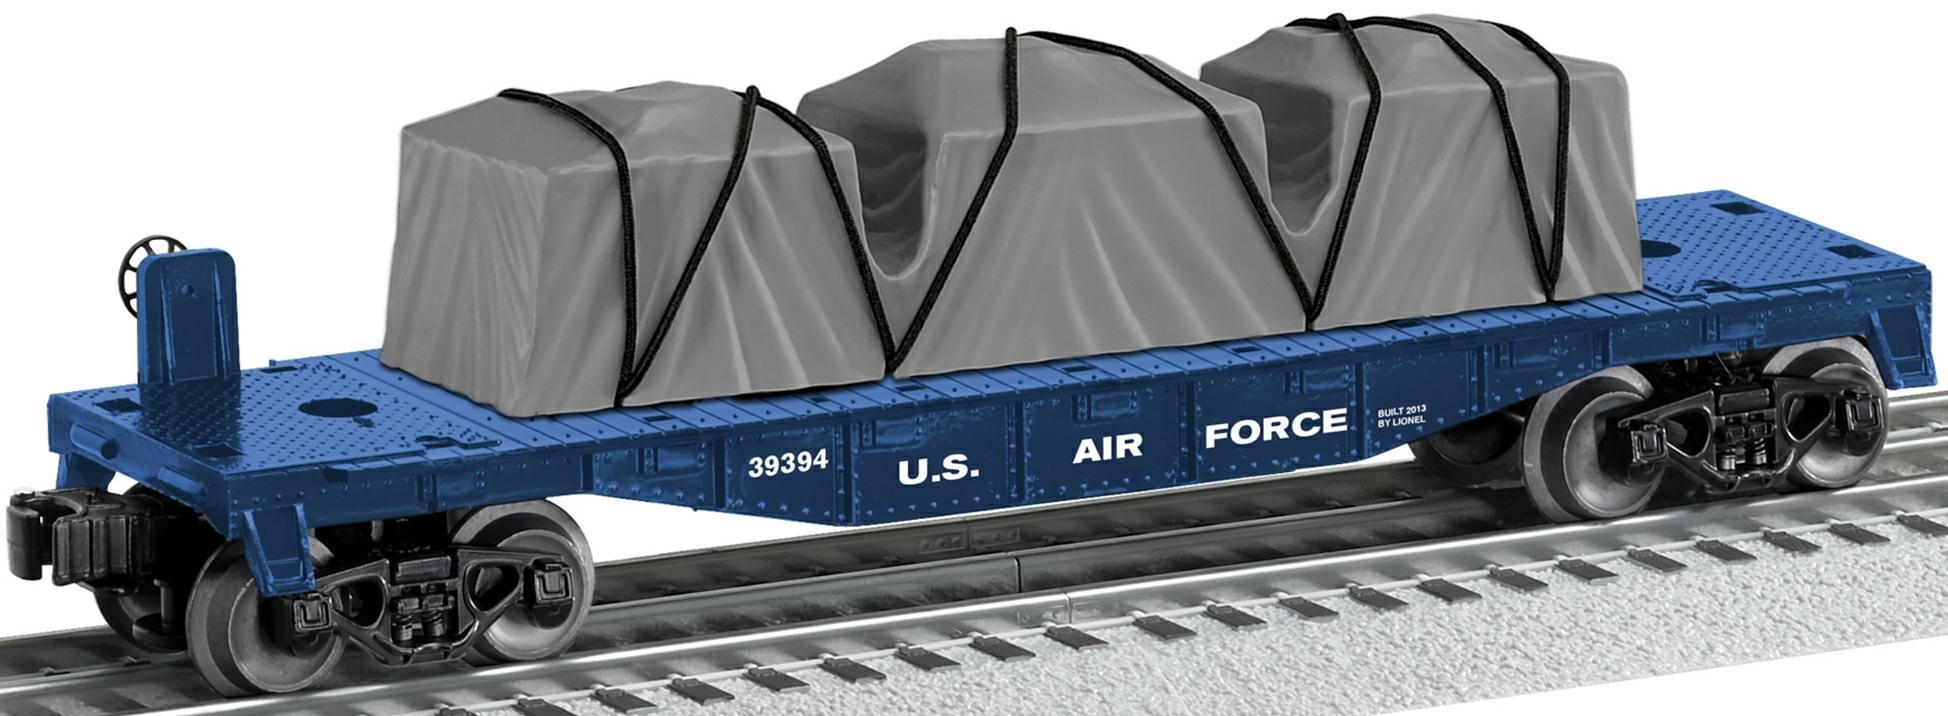 U.S. Air Force Made in USA Flatcar image